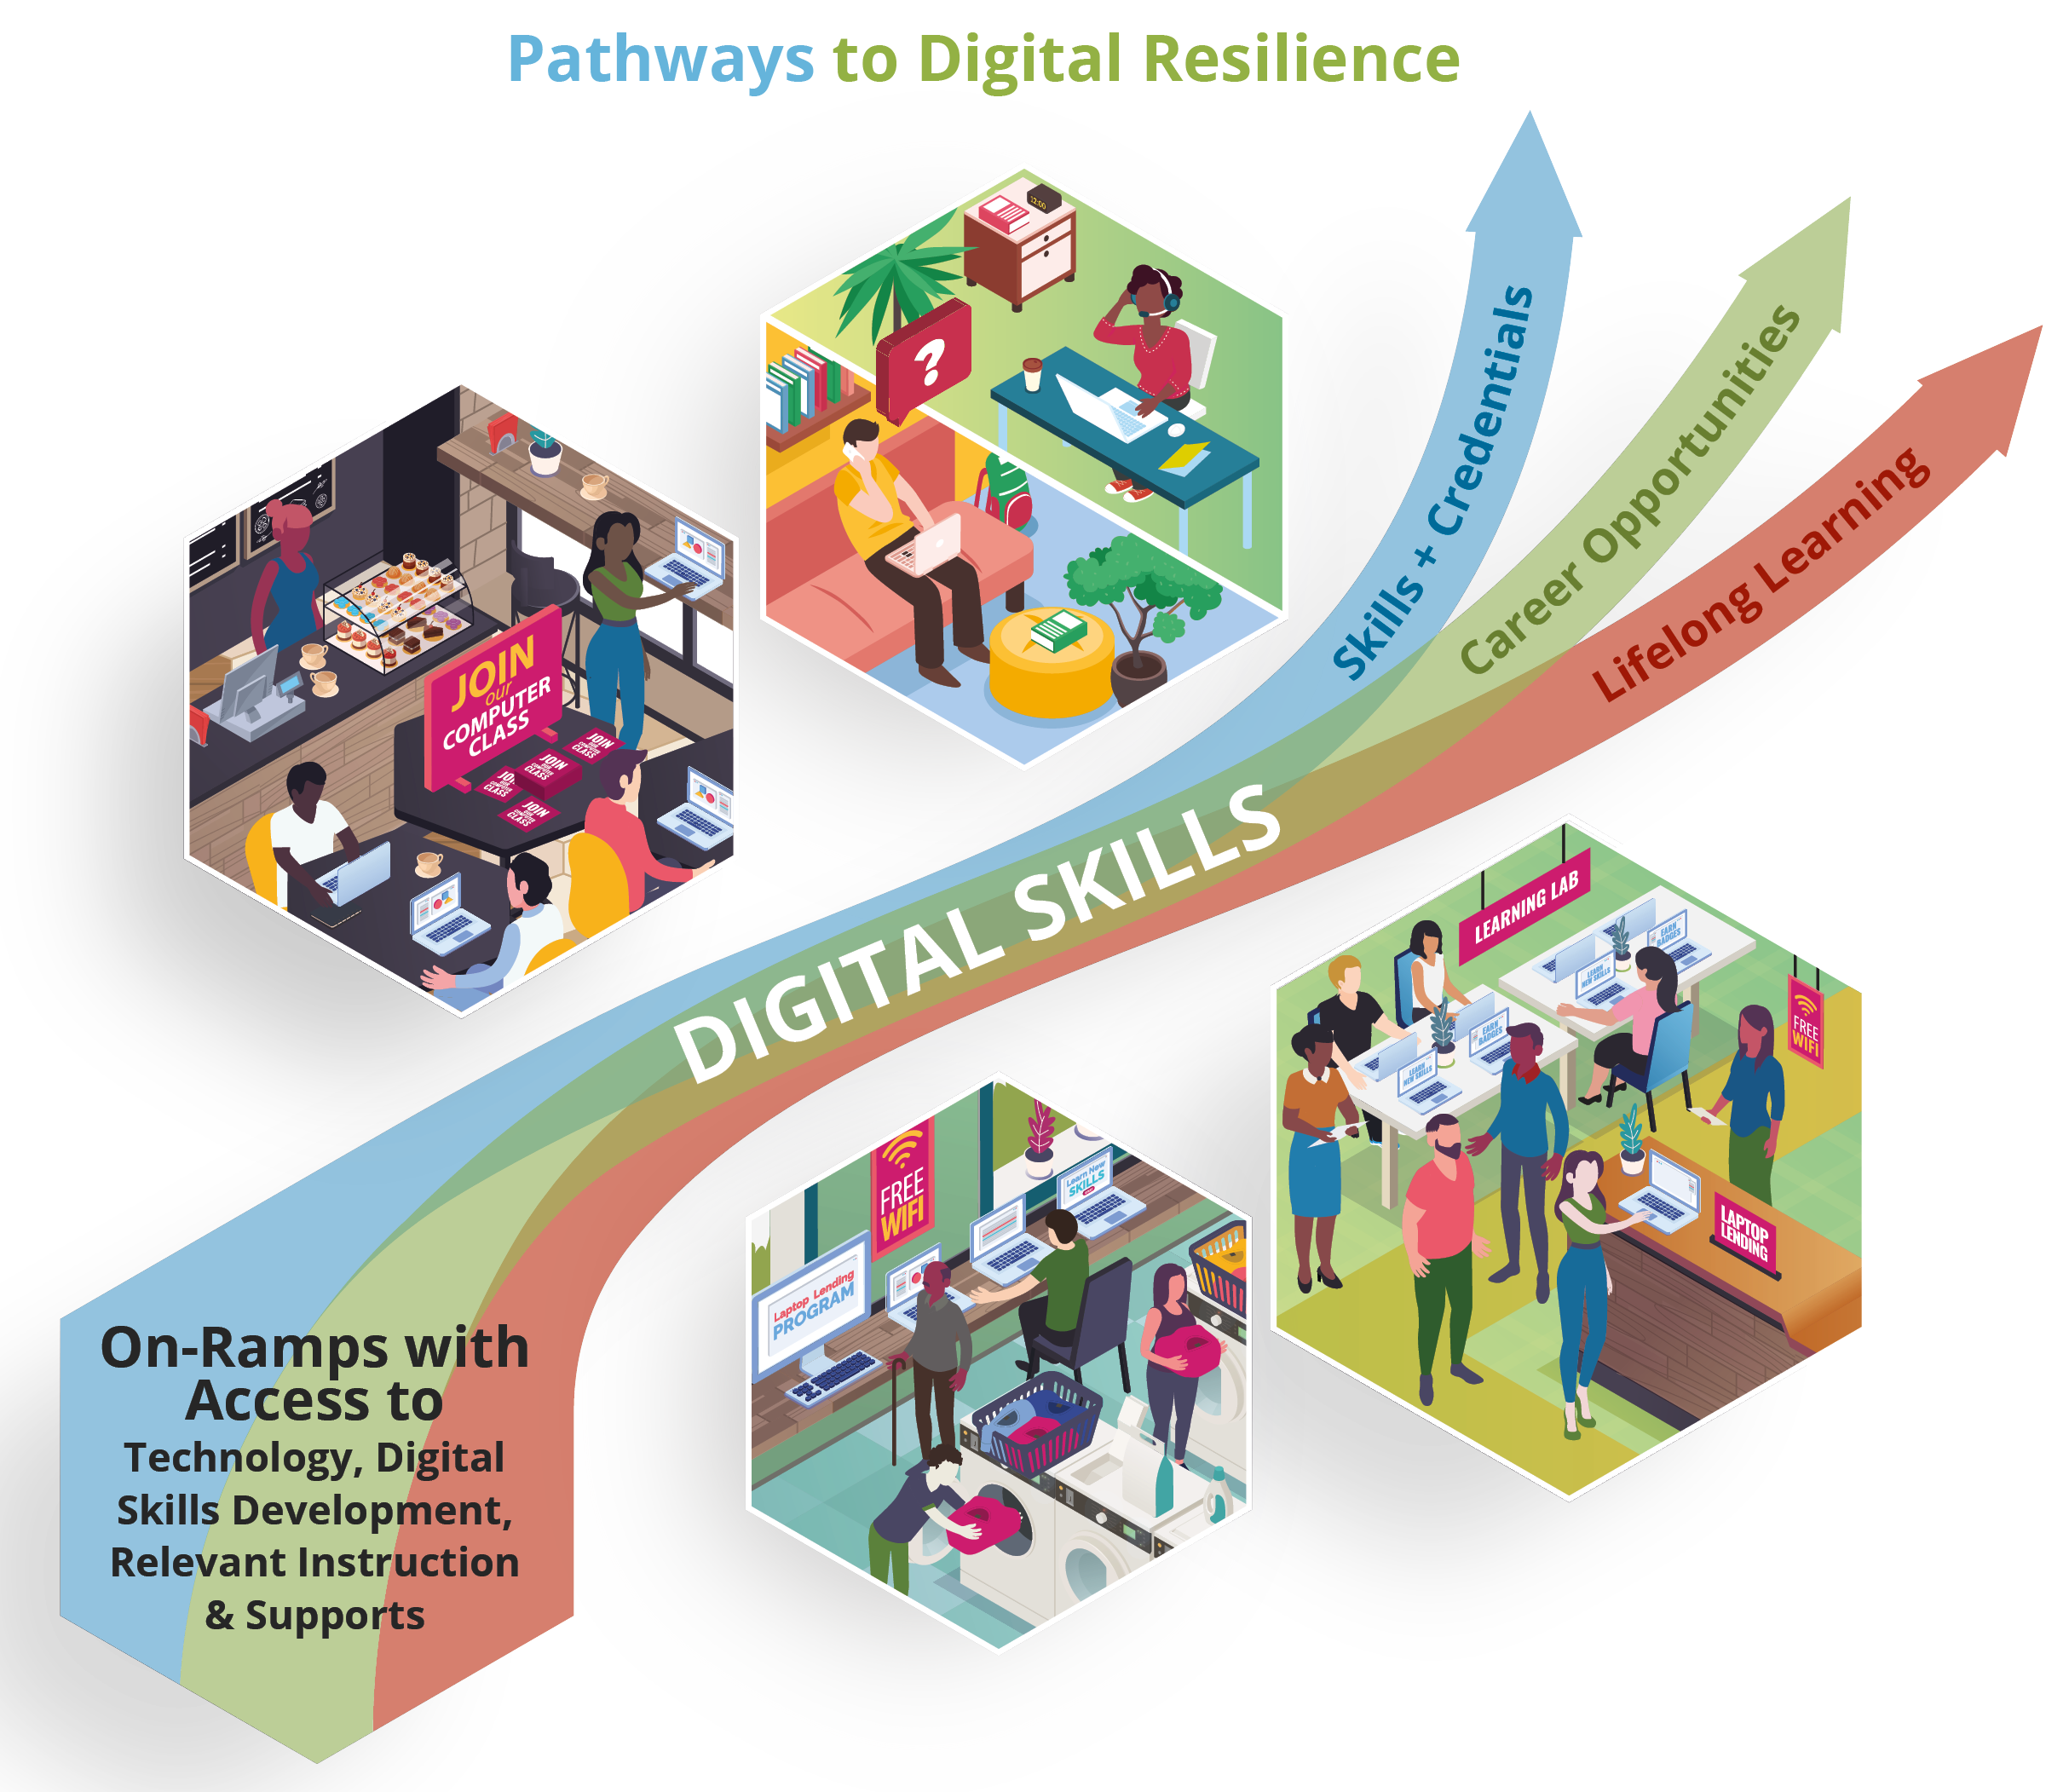 Pathways to Digital Resilience